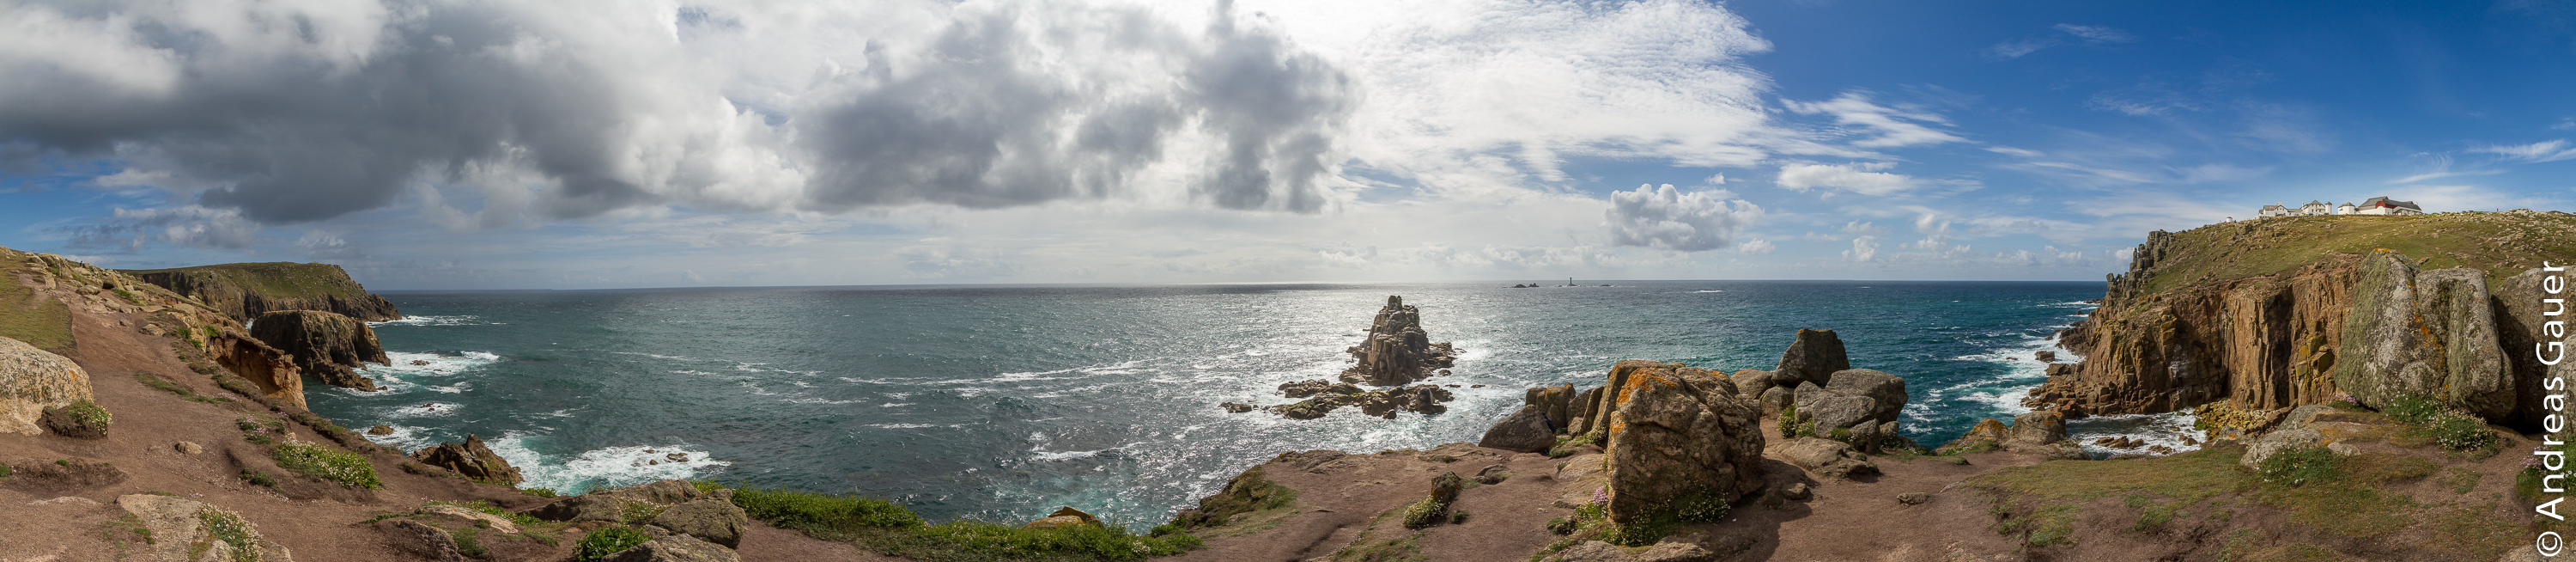 Lands_End_Pano_01